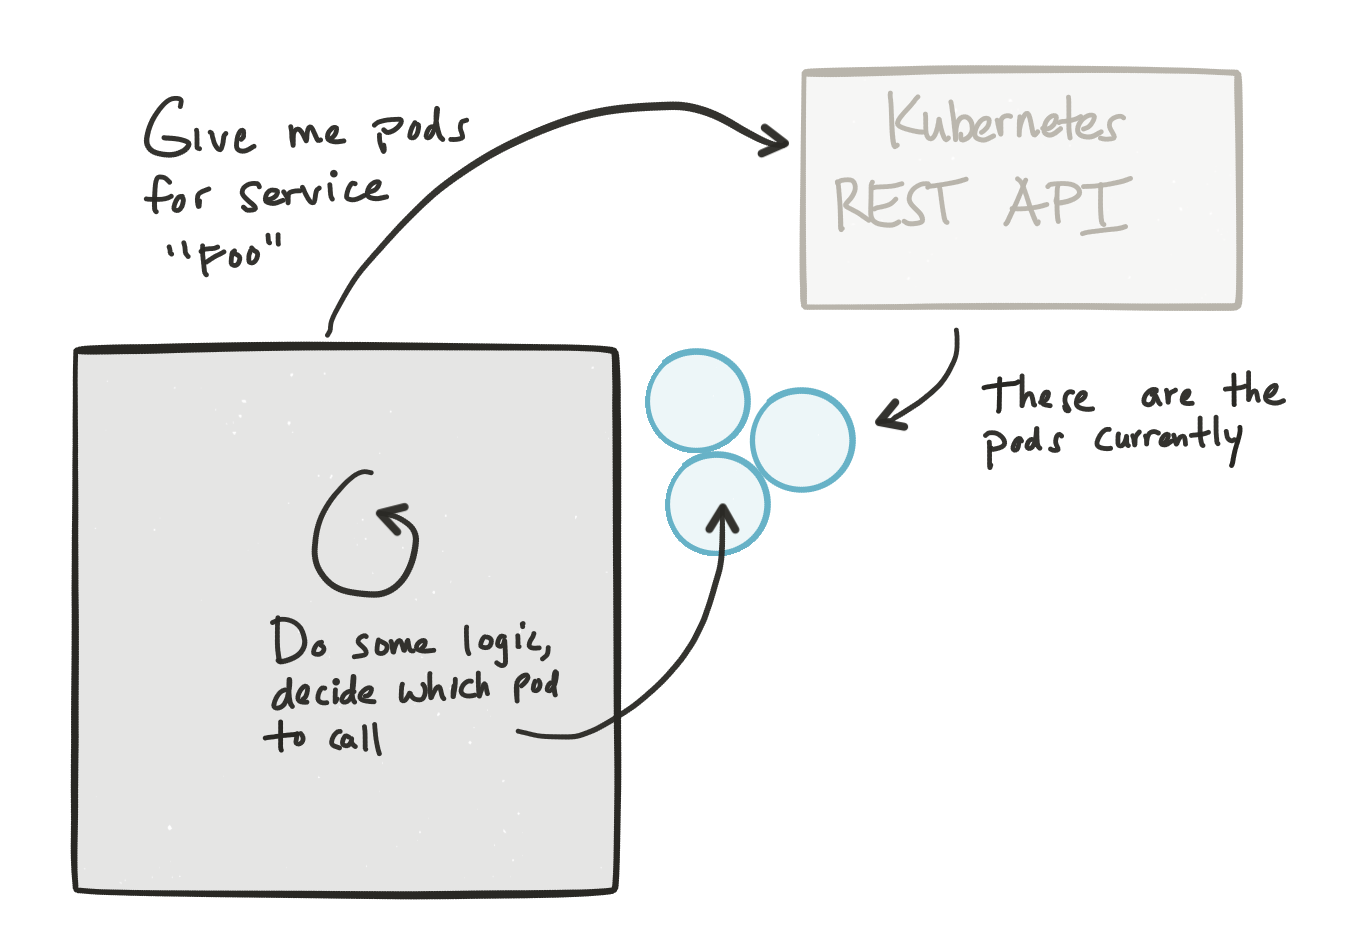 Netflix OSS, Spring Cloud, or Kubernetes? How About All of Them